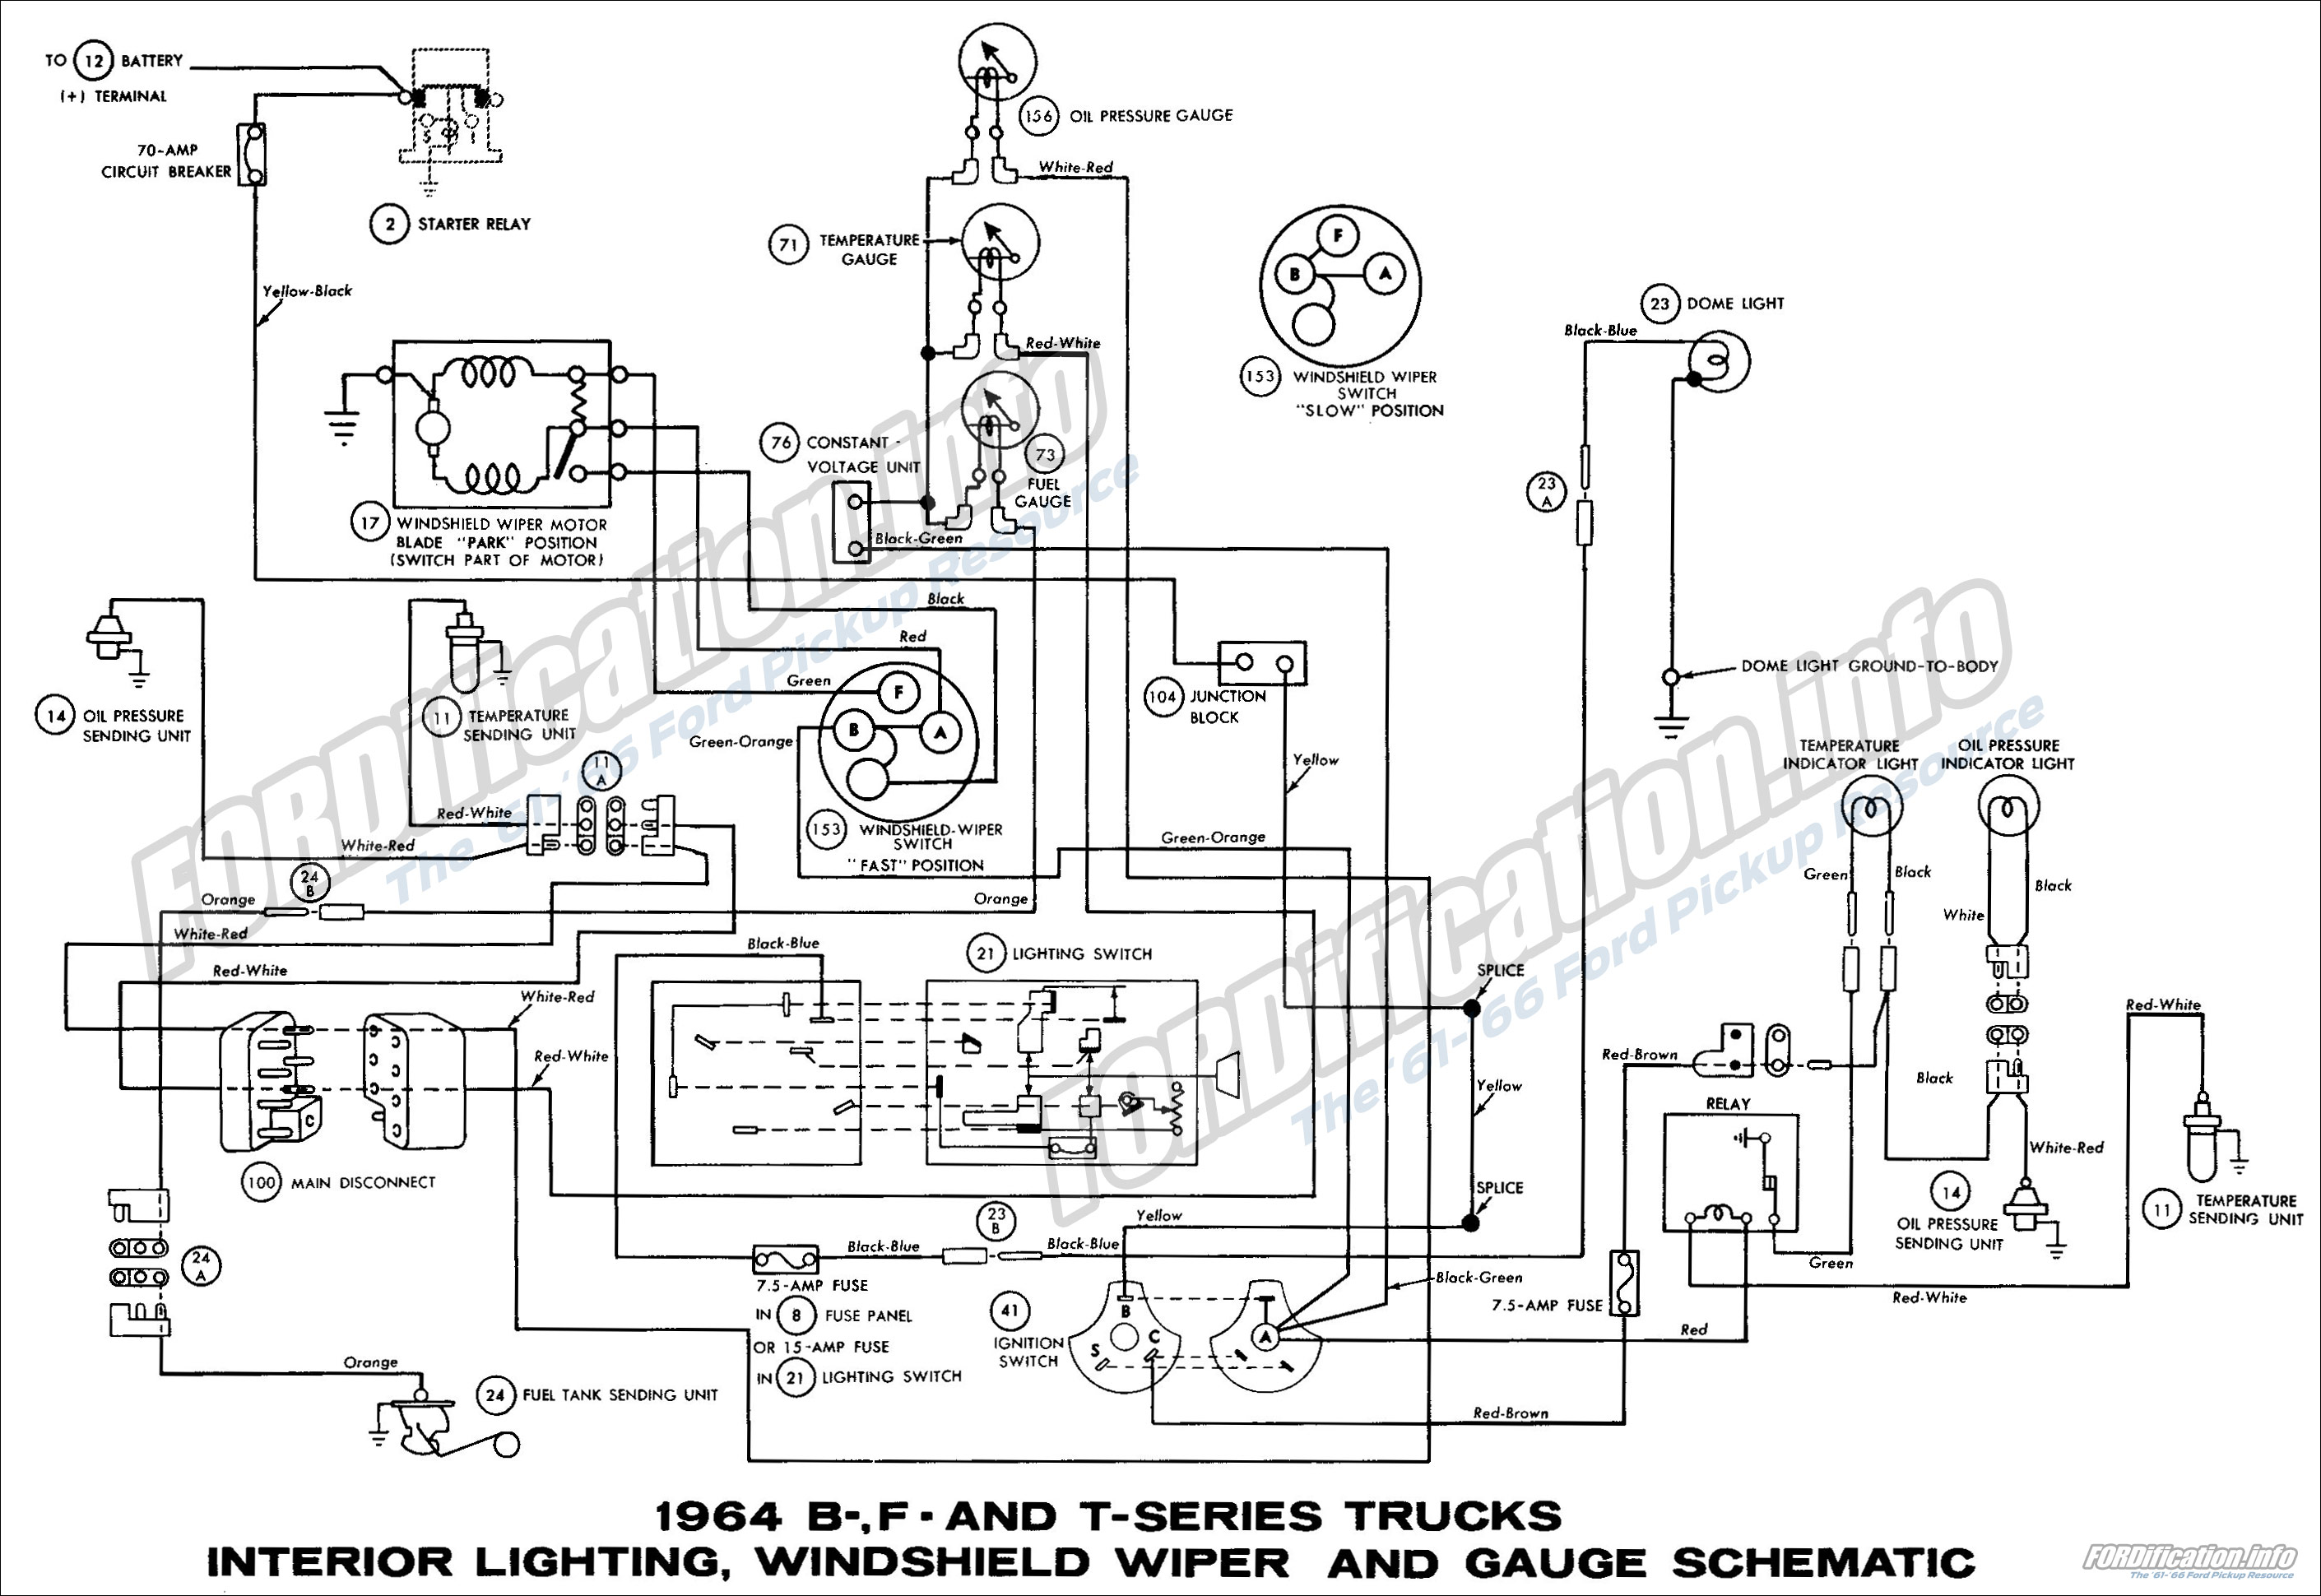 1964 Ford F100 Wiring Diagram Data For 1974 F250